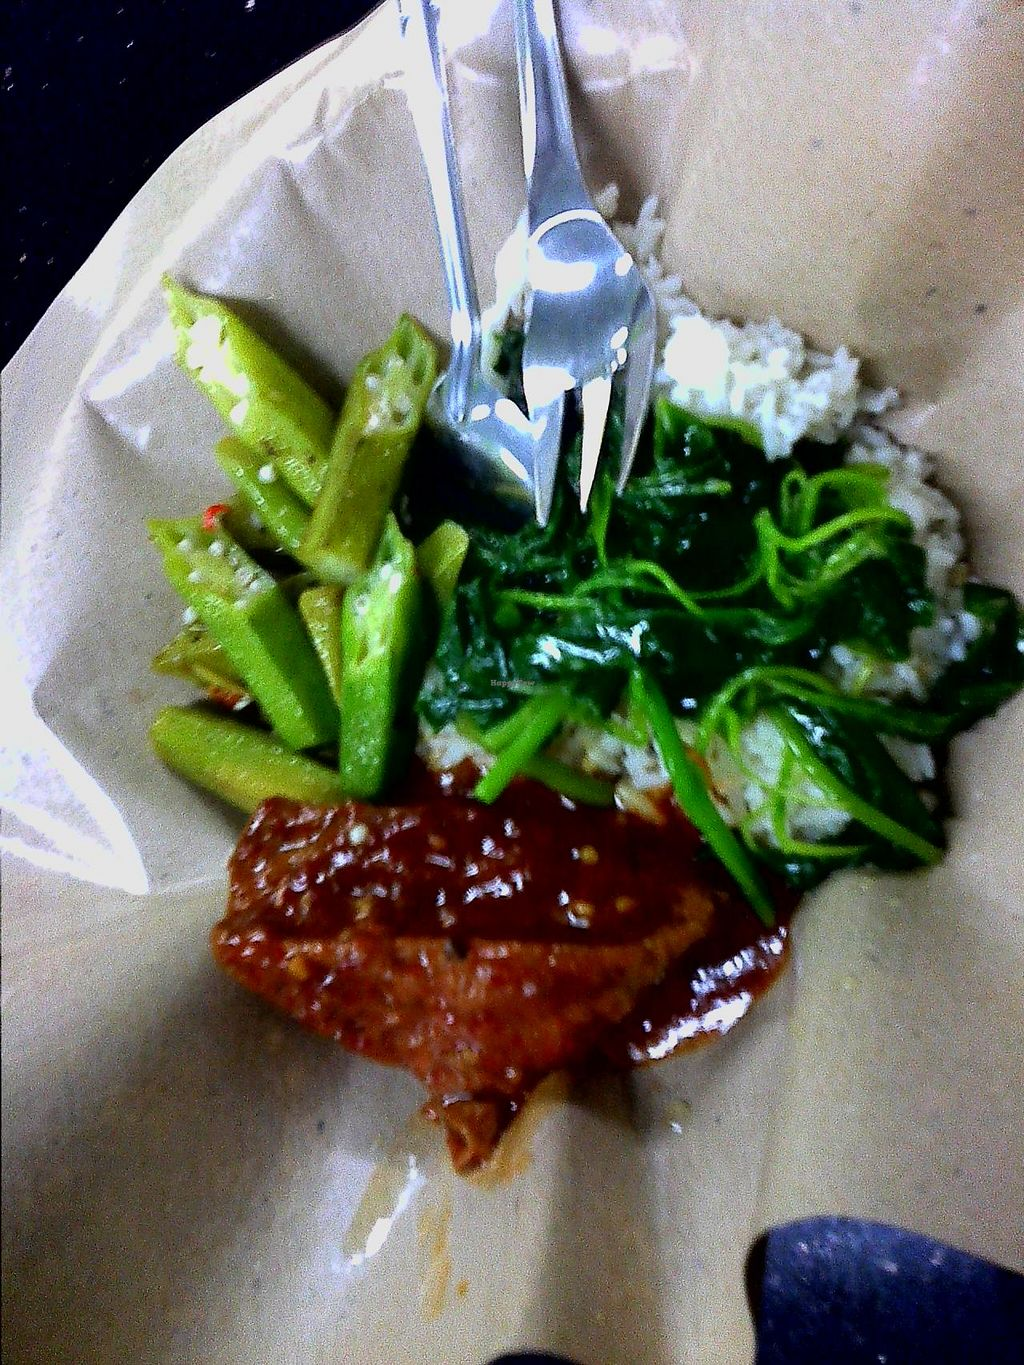 """Photo of Meow Yean Vegetarian  by <a href=""""/members/profile/Grapevine"""">Grapevine</a> <br/>$2 rice with 3 veg. items,it saves on disposable paper  <br/> November 13, 2014  - <a href='/contact/abuse/image/42810/85417'>Report</a>"""